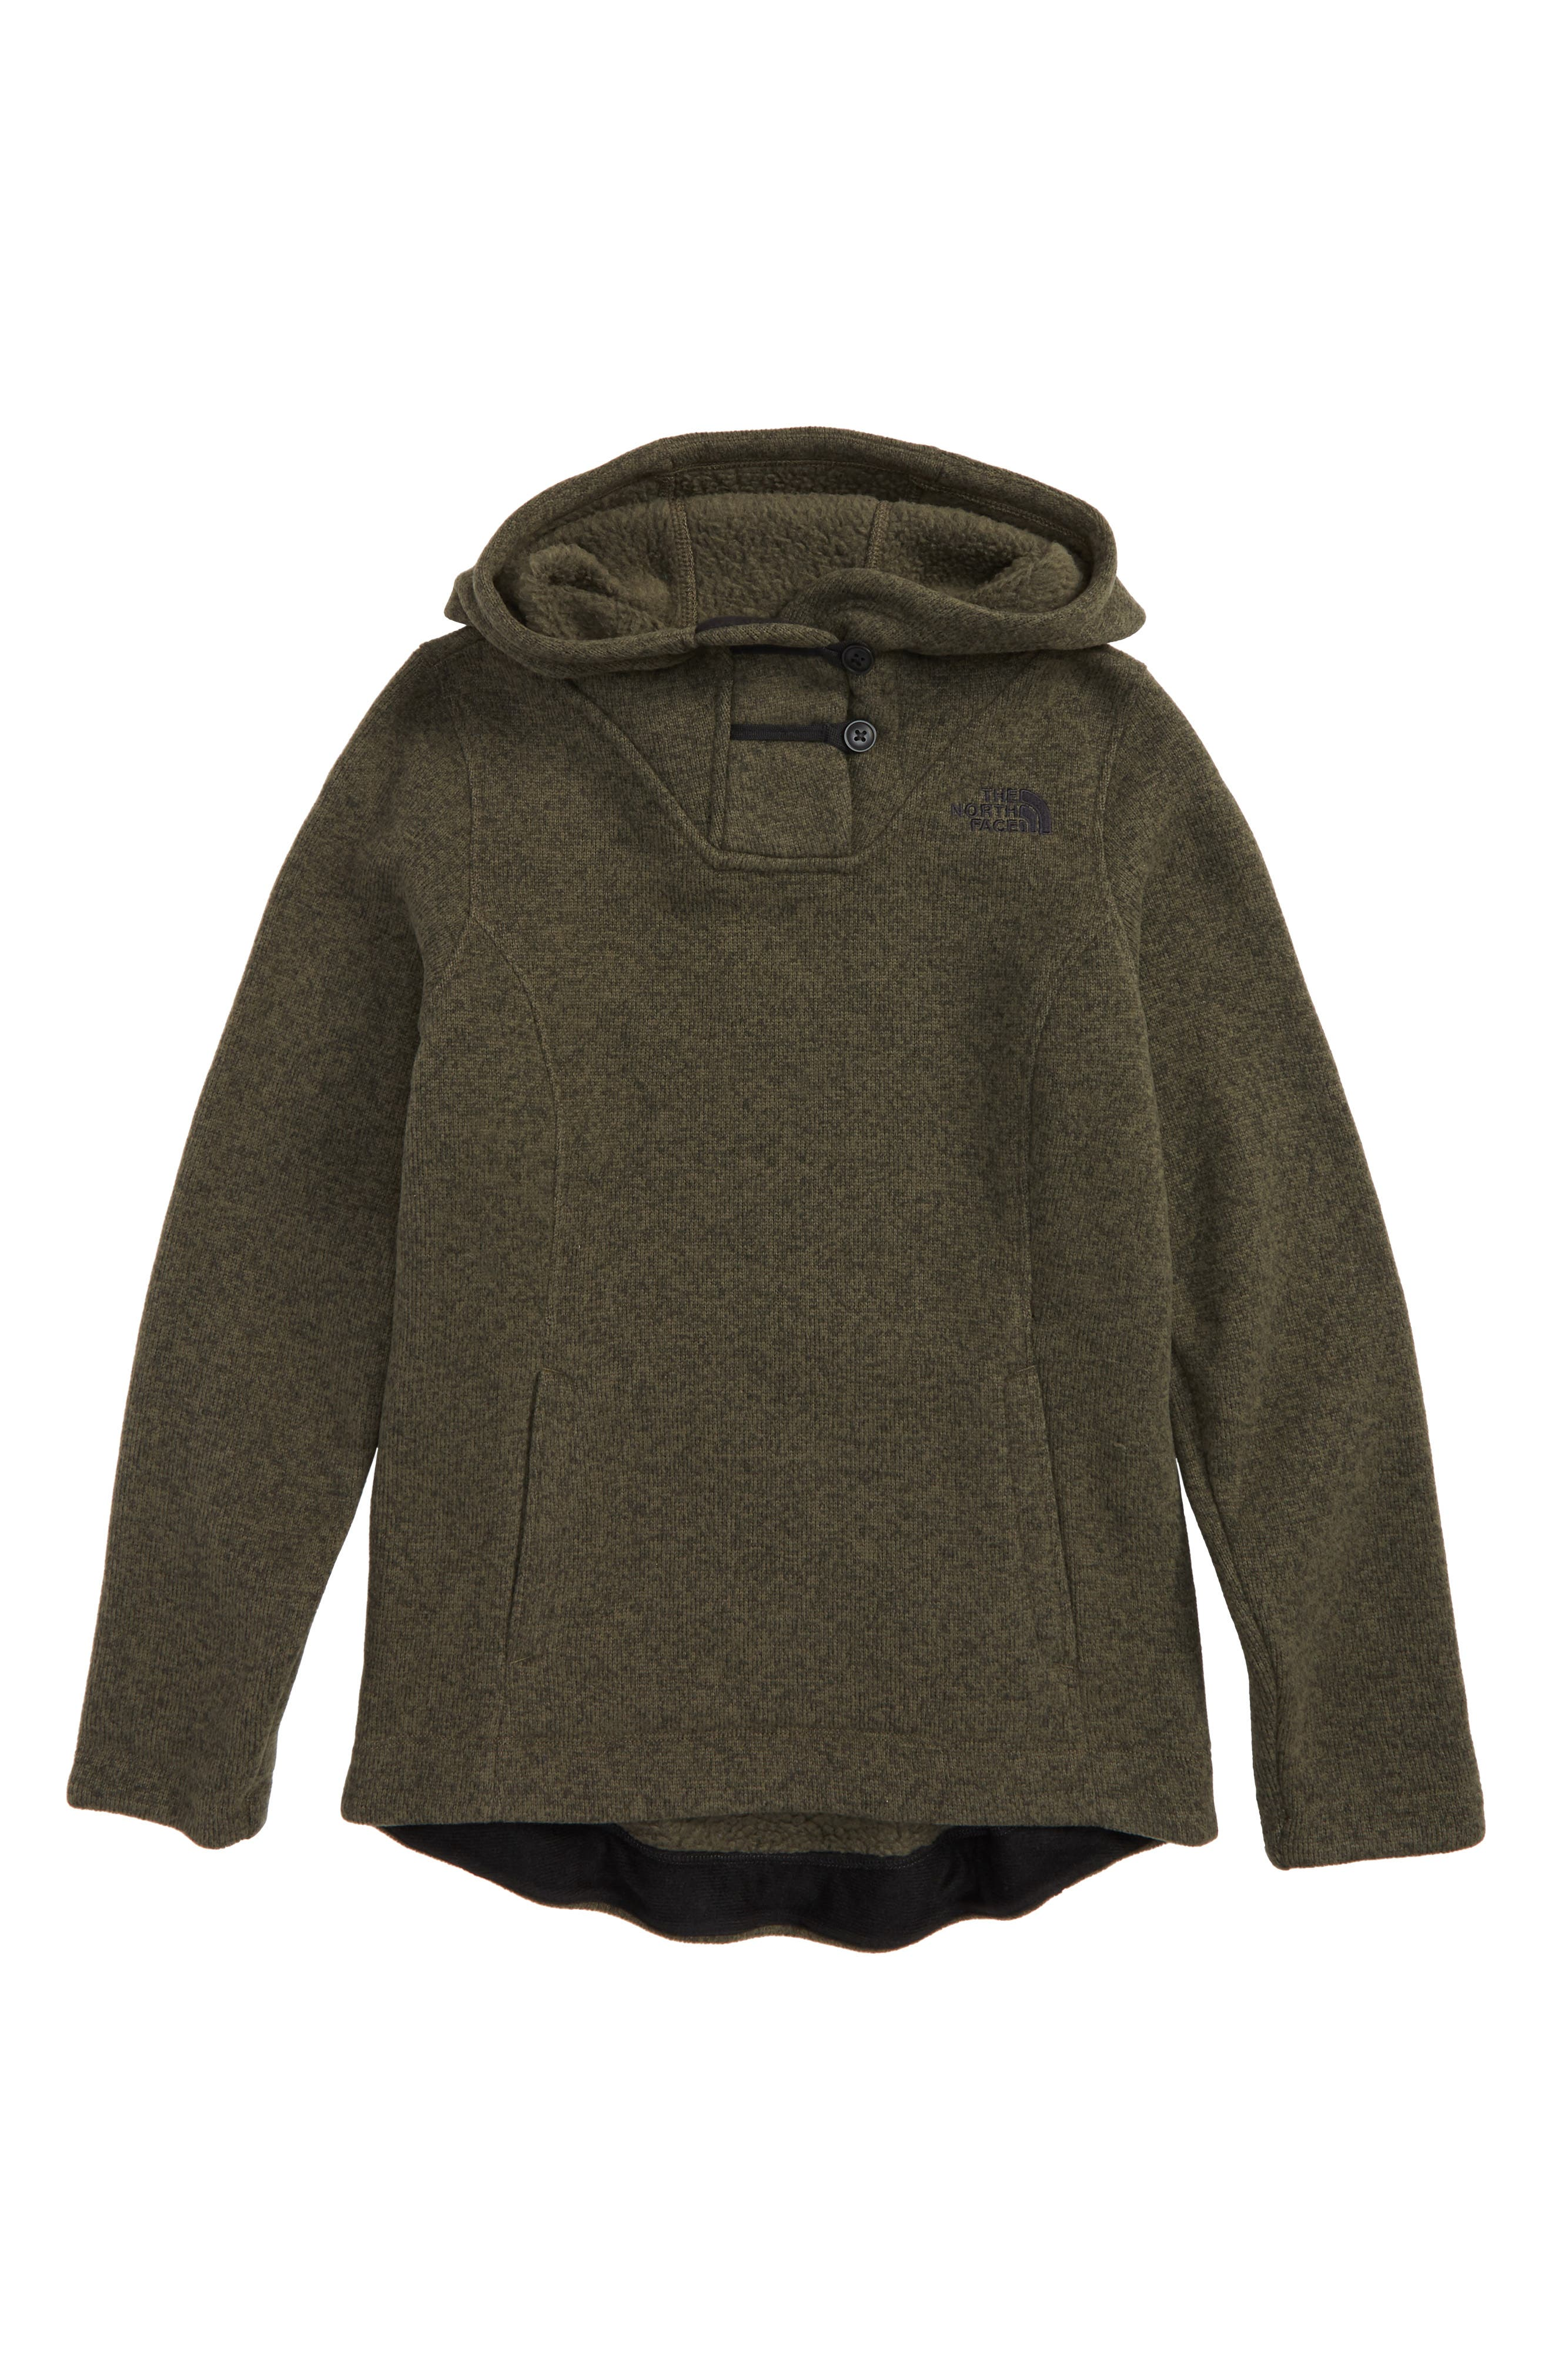 Crescent Sunset Hoodie,                             Main thumbnail 1, color,                             Taupe Green Heather